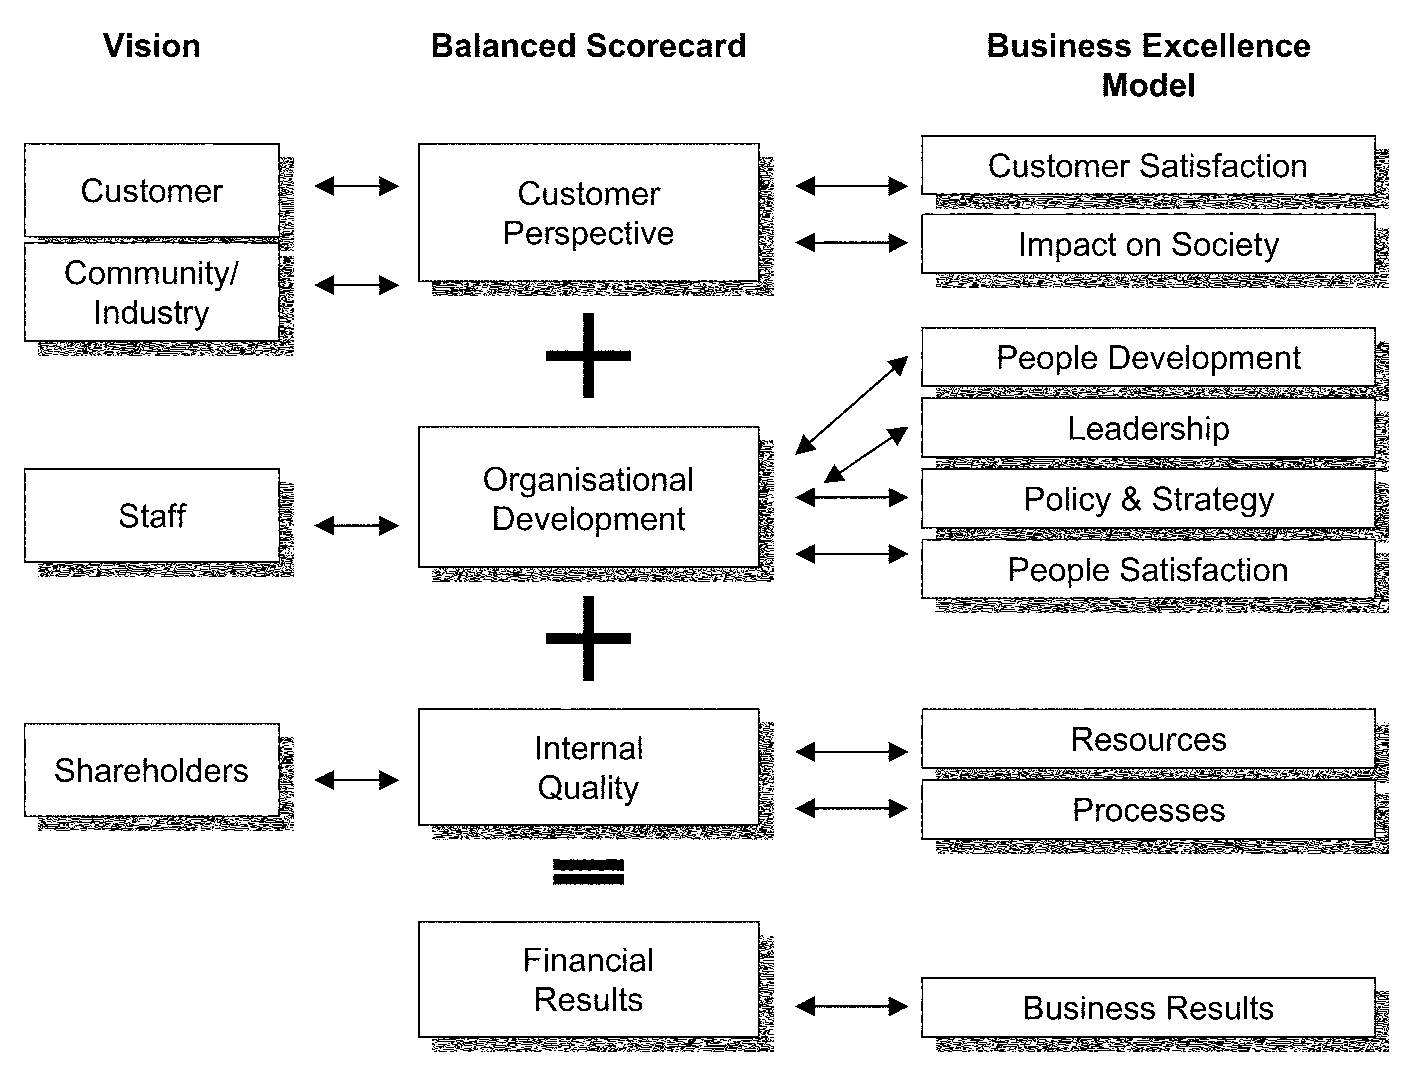 chadwick case balance scorecard Performance measurement is one of the core activities of management accounting, and the balanced scorecard is a  balanced scorecards in management accounting.